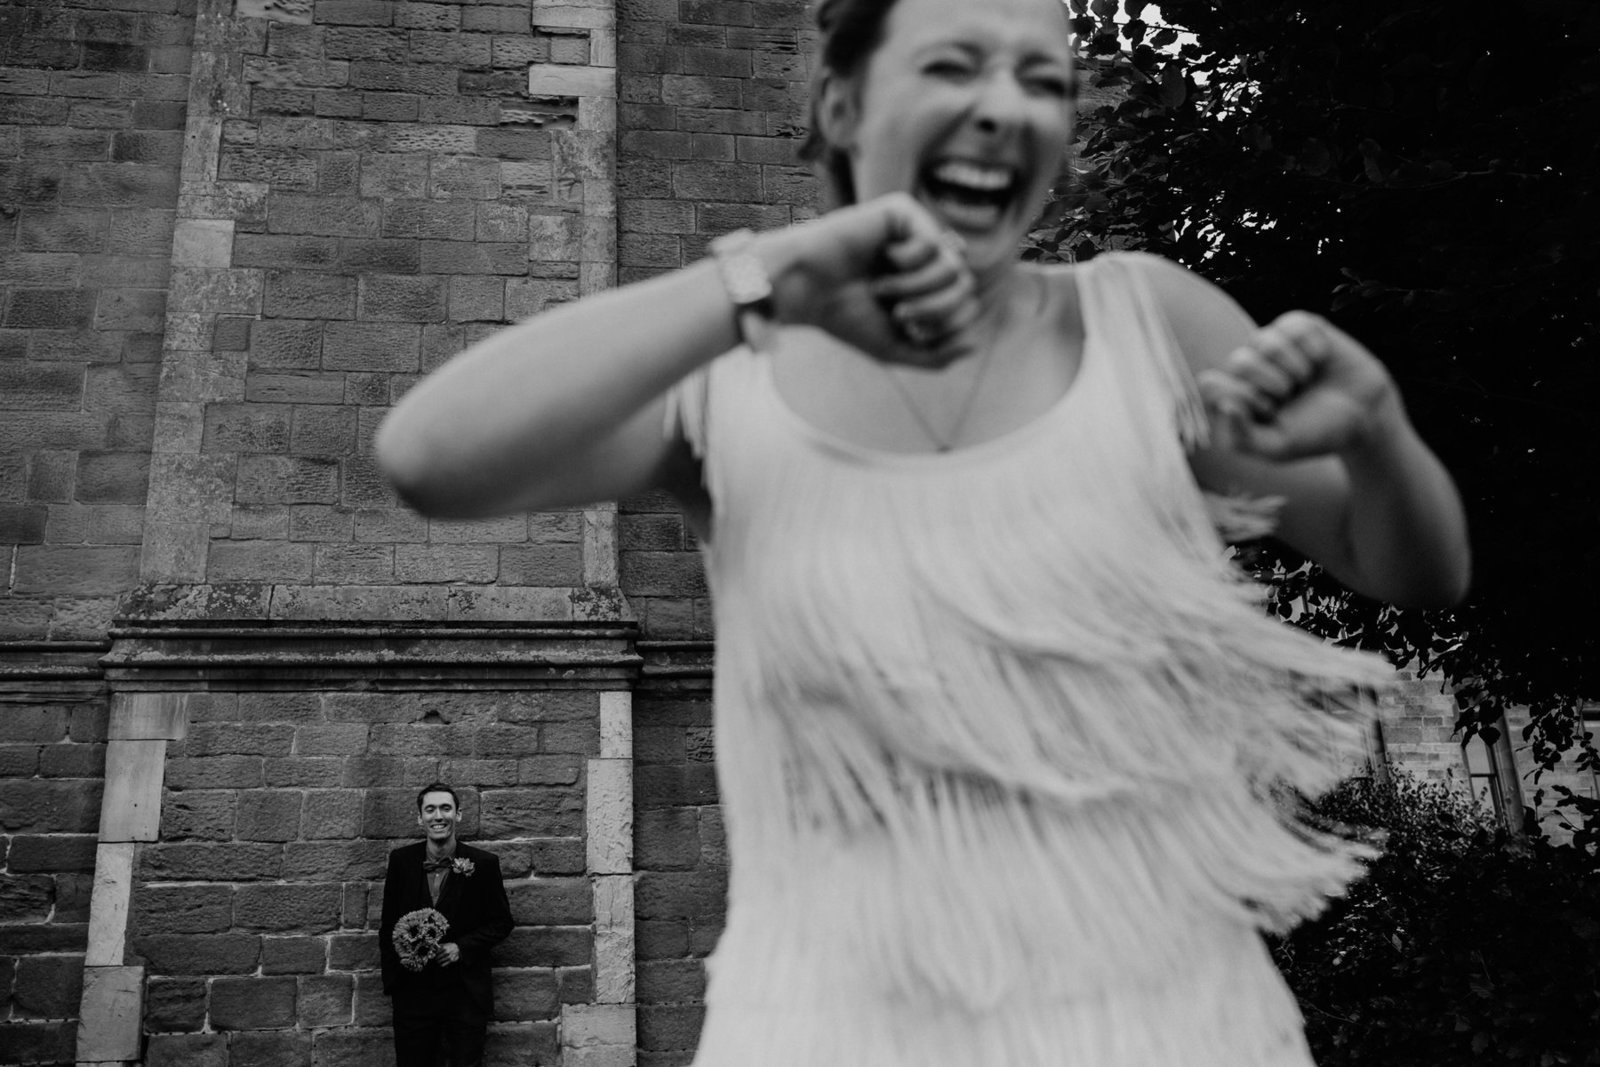 Bride and groom at allerton castle. Yorkshire wedding photographer